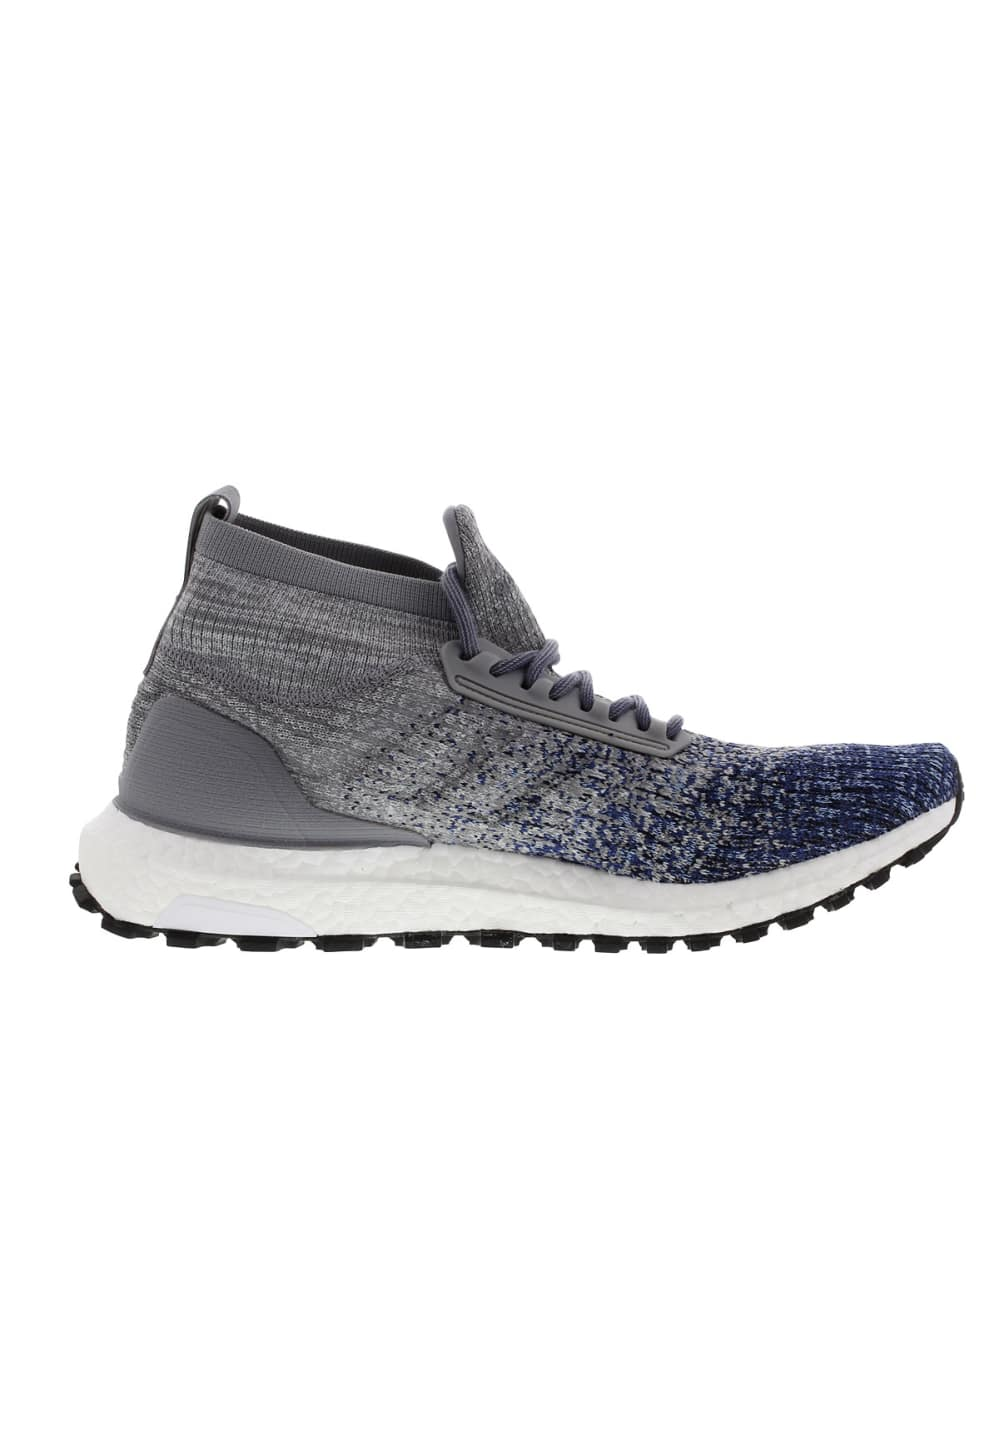 new arrivals ffcf9 02892 adidas Ultra Boost All Terrain - Running shoes for Men - Grey